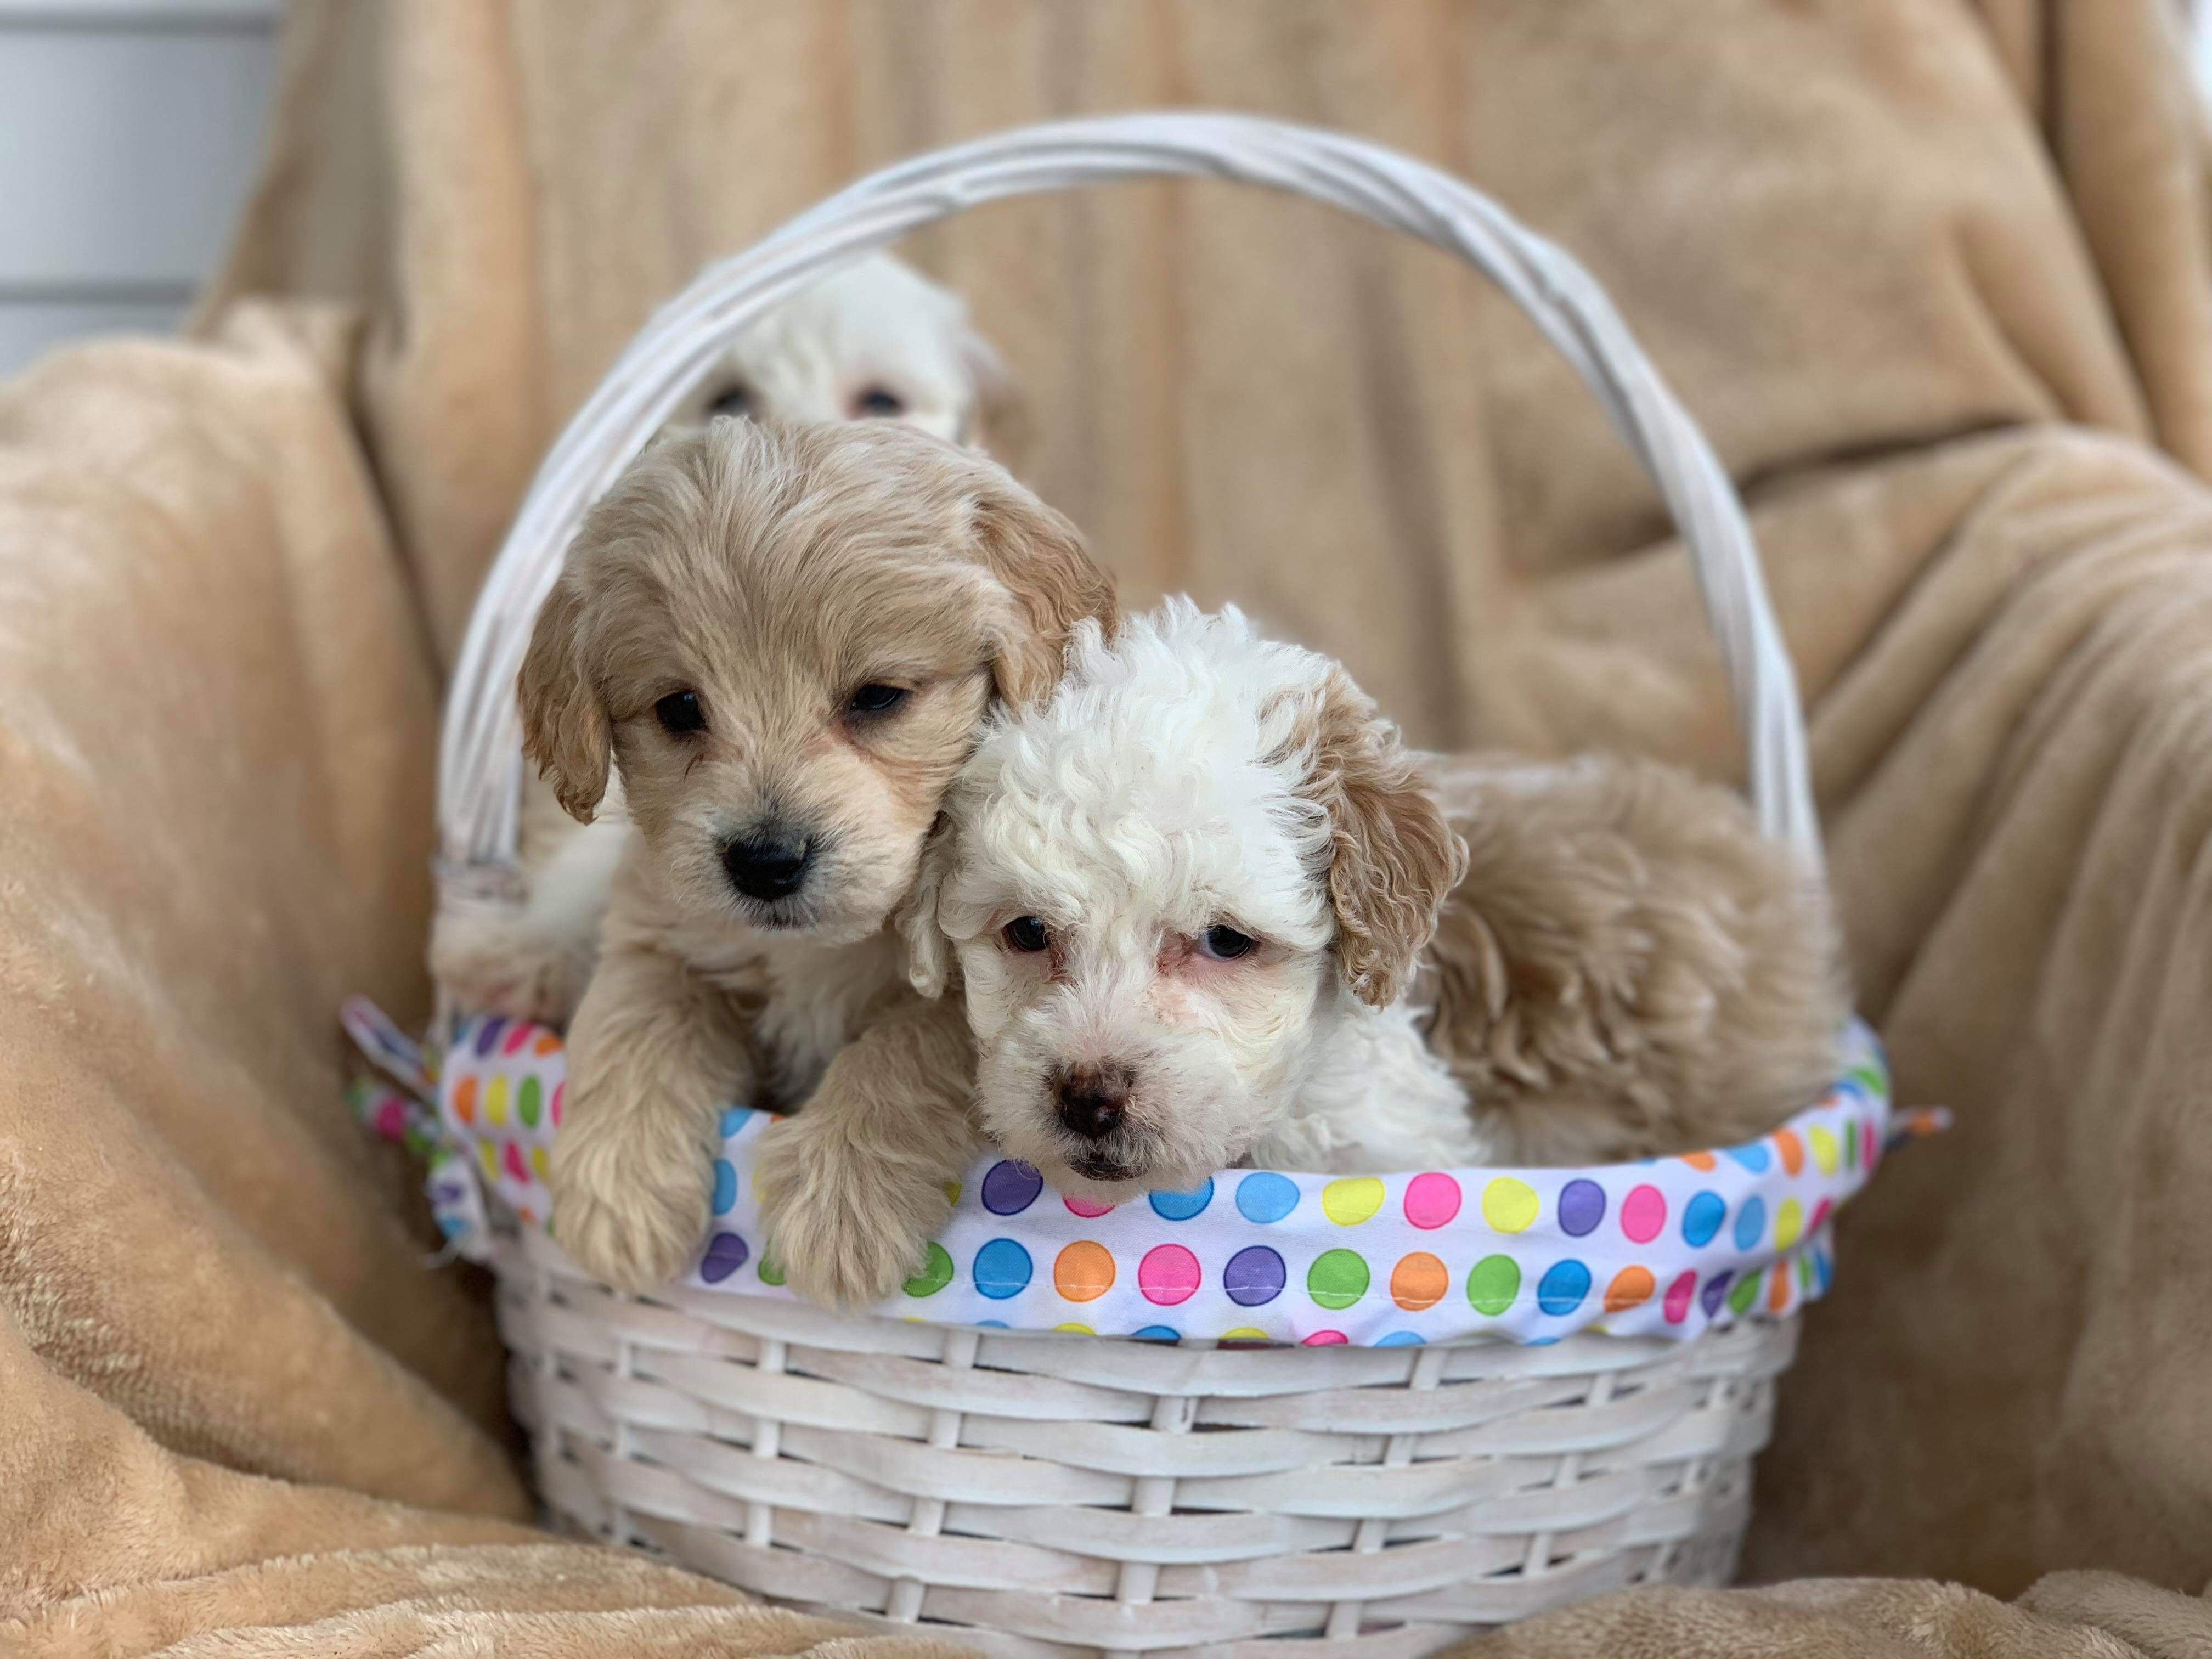 Happily Adopted Archives - Orchard Pups - Orchard Pups